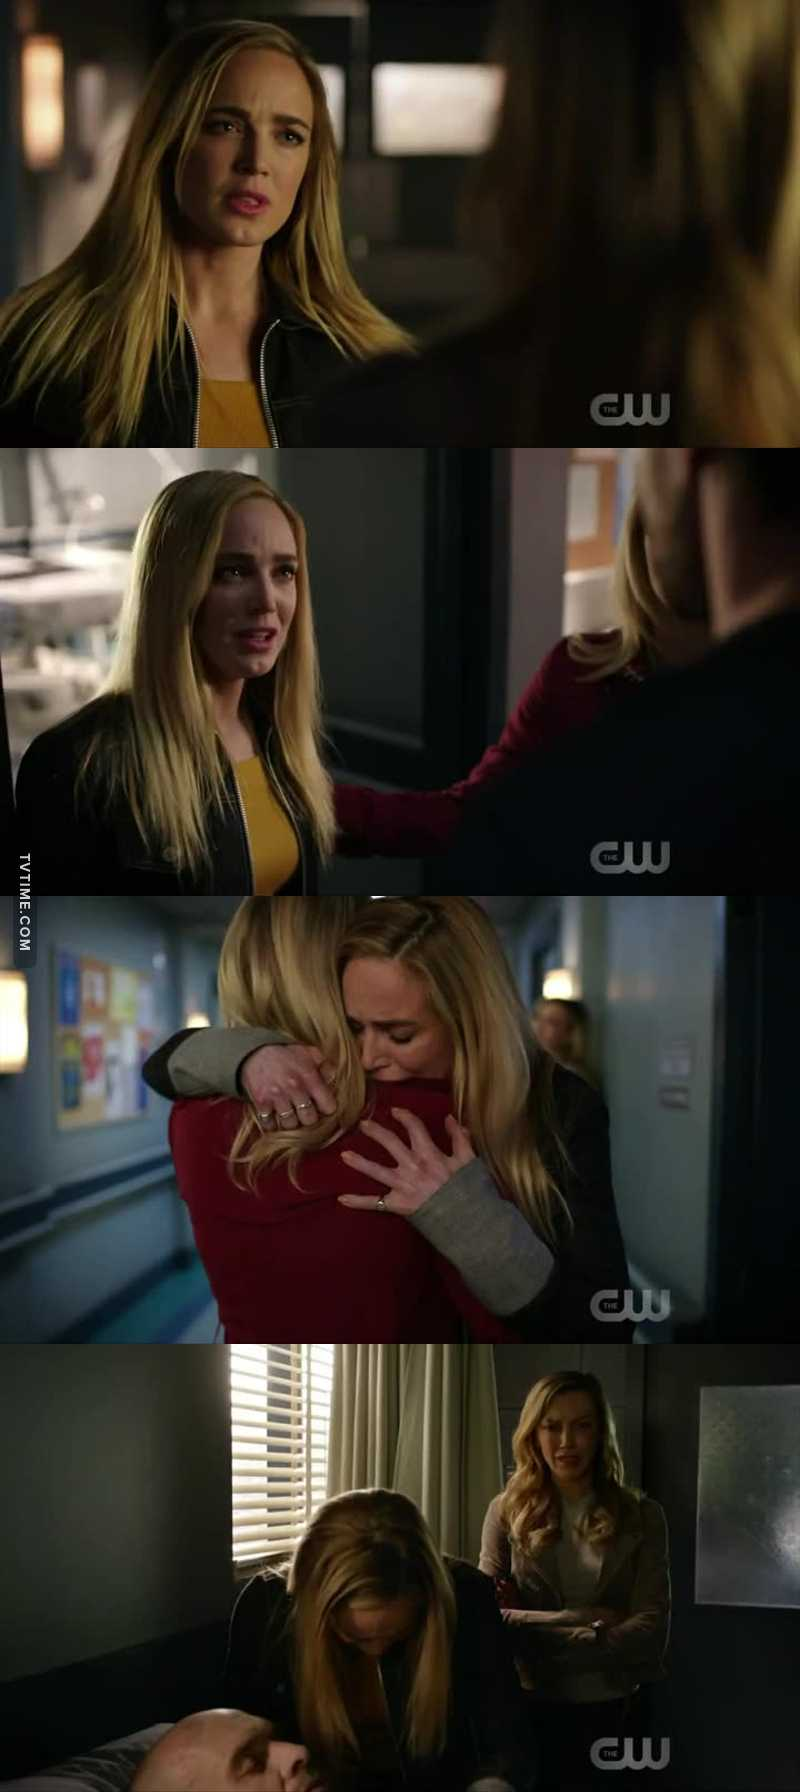 My baby don't deserve that. She lost her sister and now your father!! I can't handle to see her crying💔😭